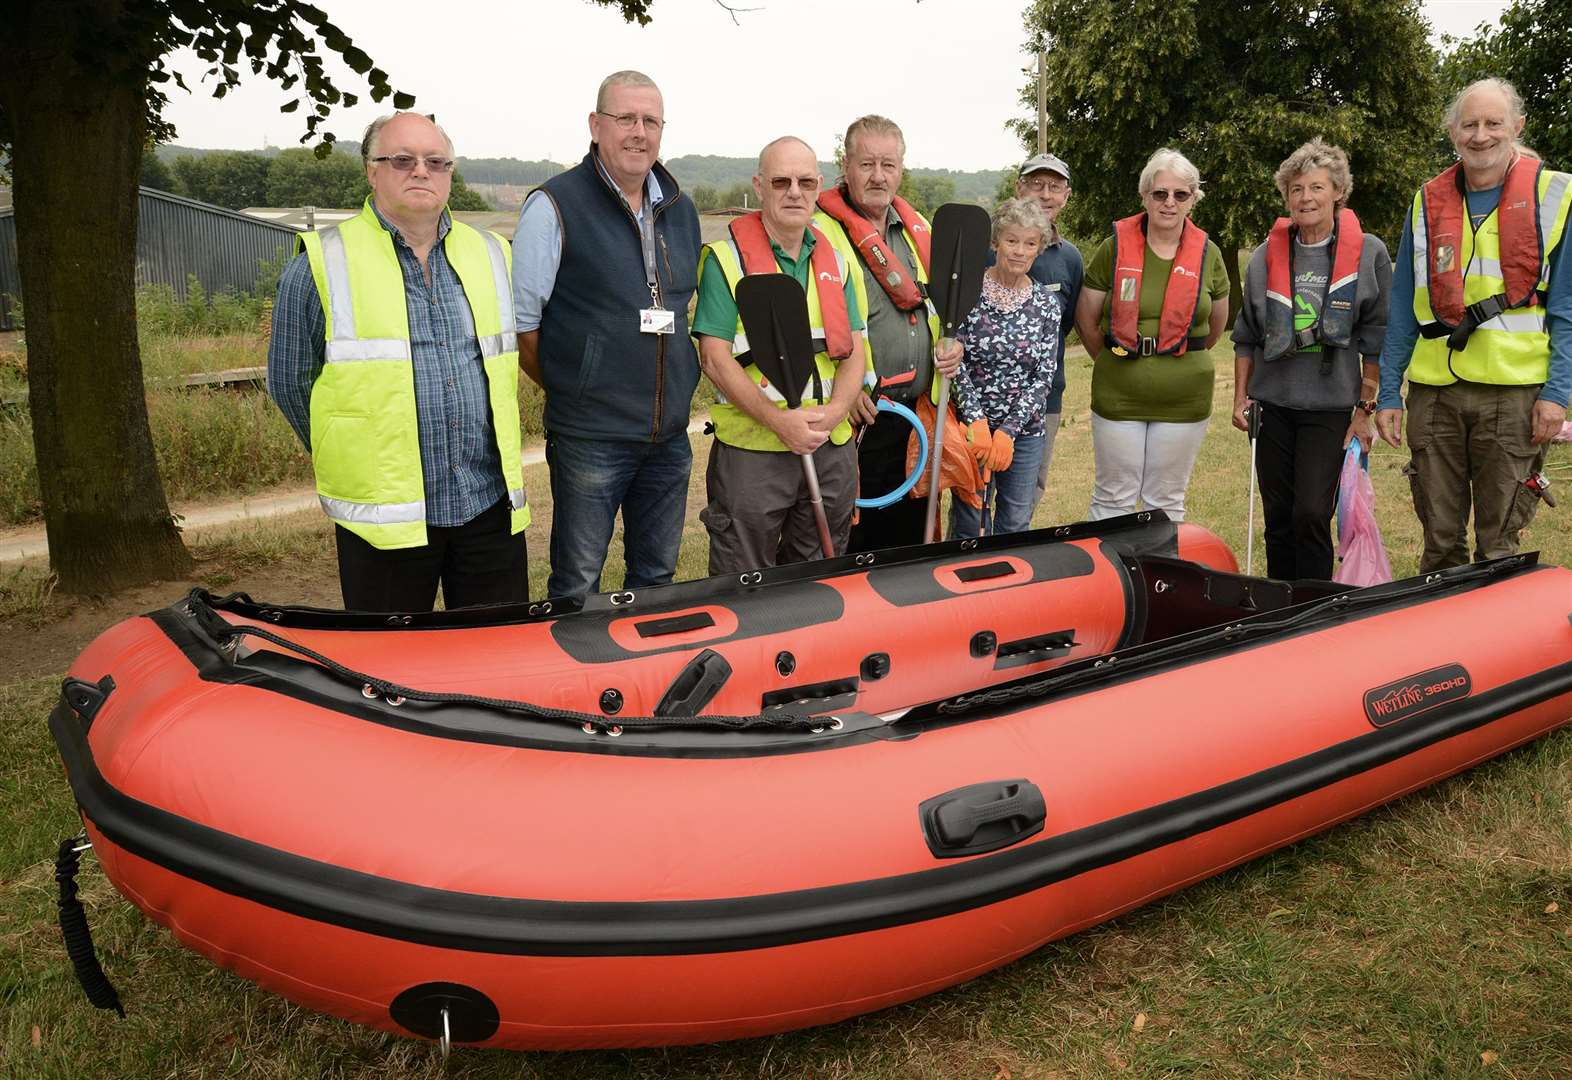 Inflatable dinghy aids Grantham Canal clean up efforts